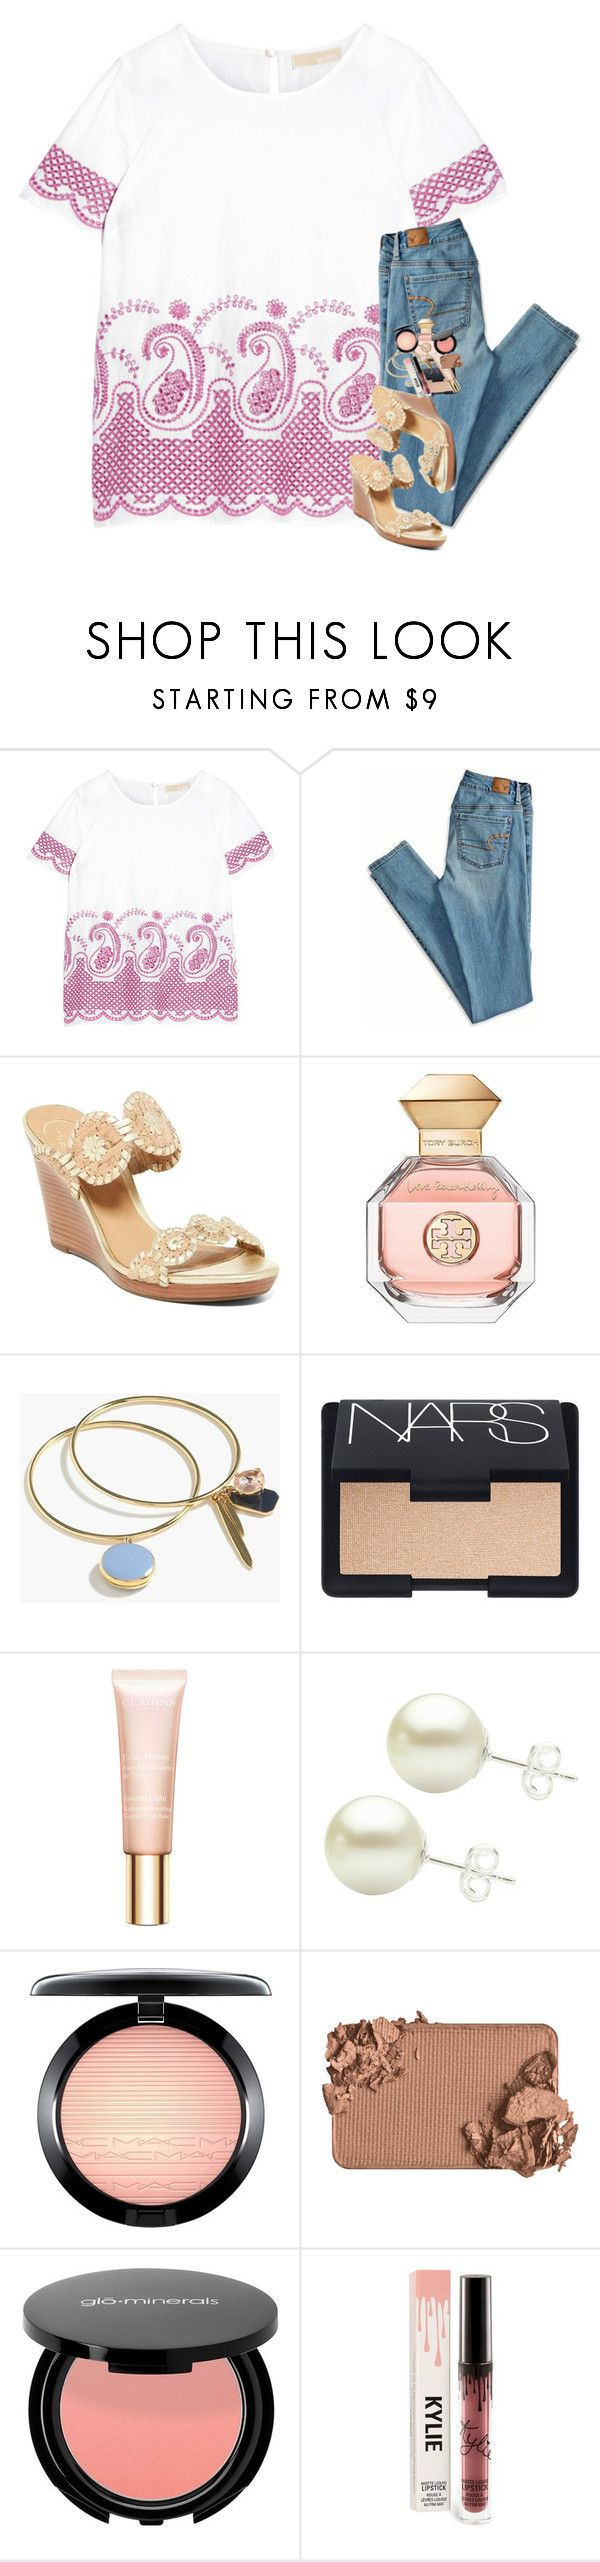 """""""do your best and let God do the rest"""" by hailstails ❤ liked on Polyvore featuring MICHAEL Michael Kors, American Eagle Outfitters, Jack Rogers, Tory Burch, J.Crew, NARS Cosmetics, Clarins, MAC Cosmetics and Too Faced Cosmetics"""